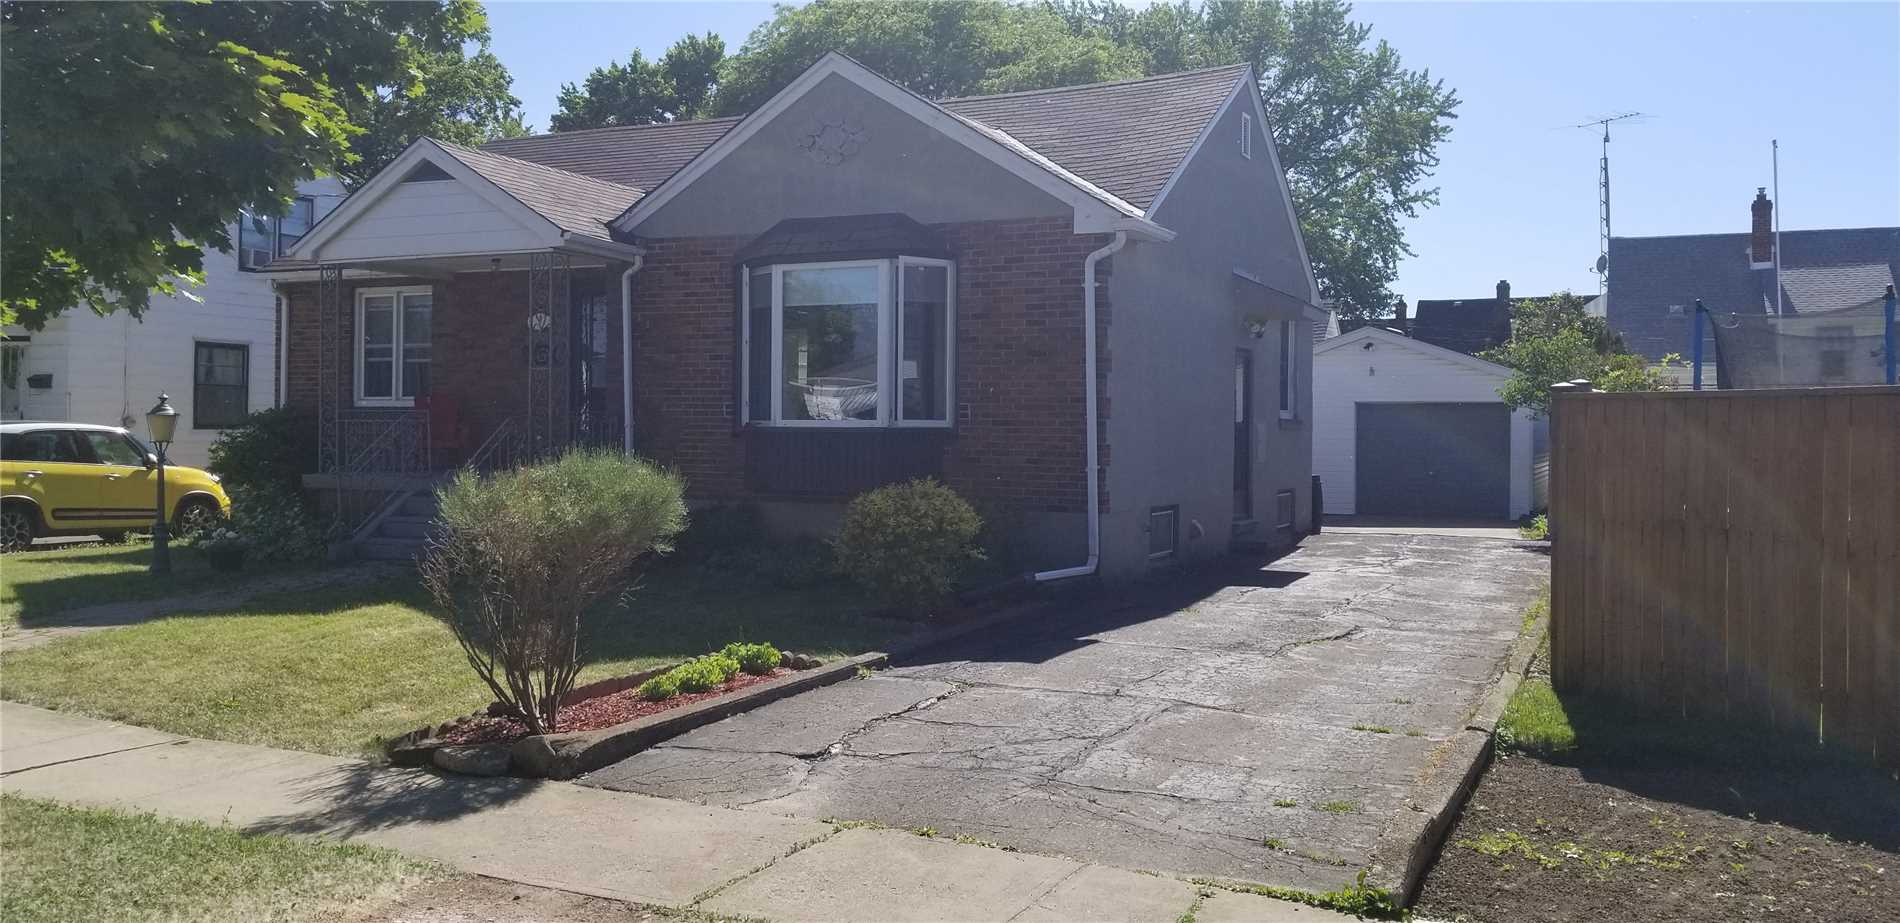 pictures of 9 Nestor St, St. Catharines L2P 1T8